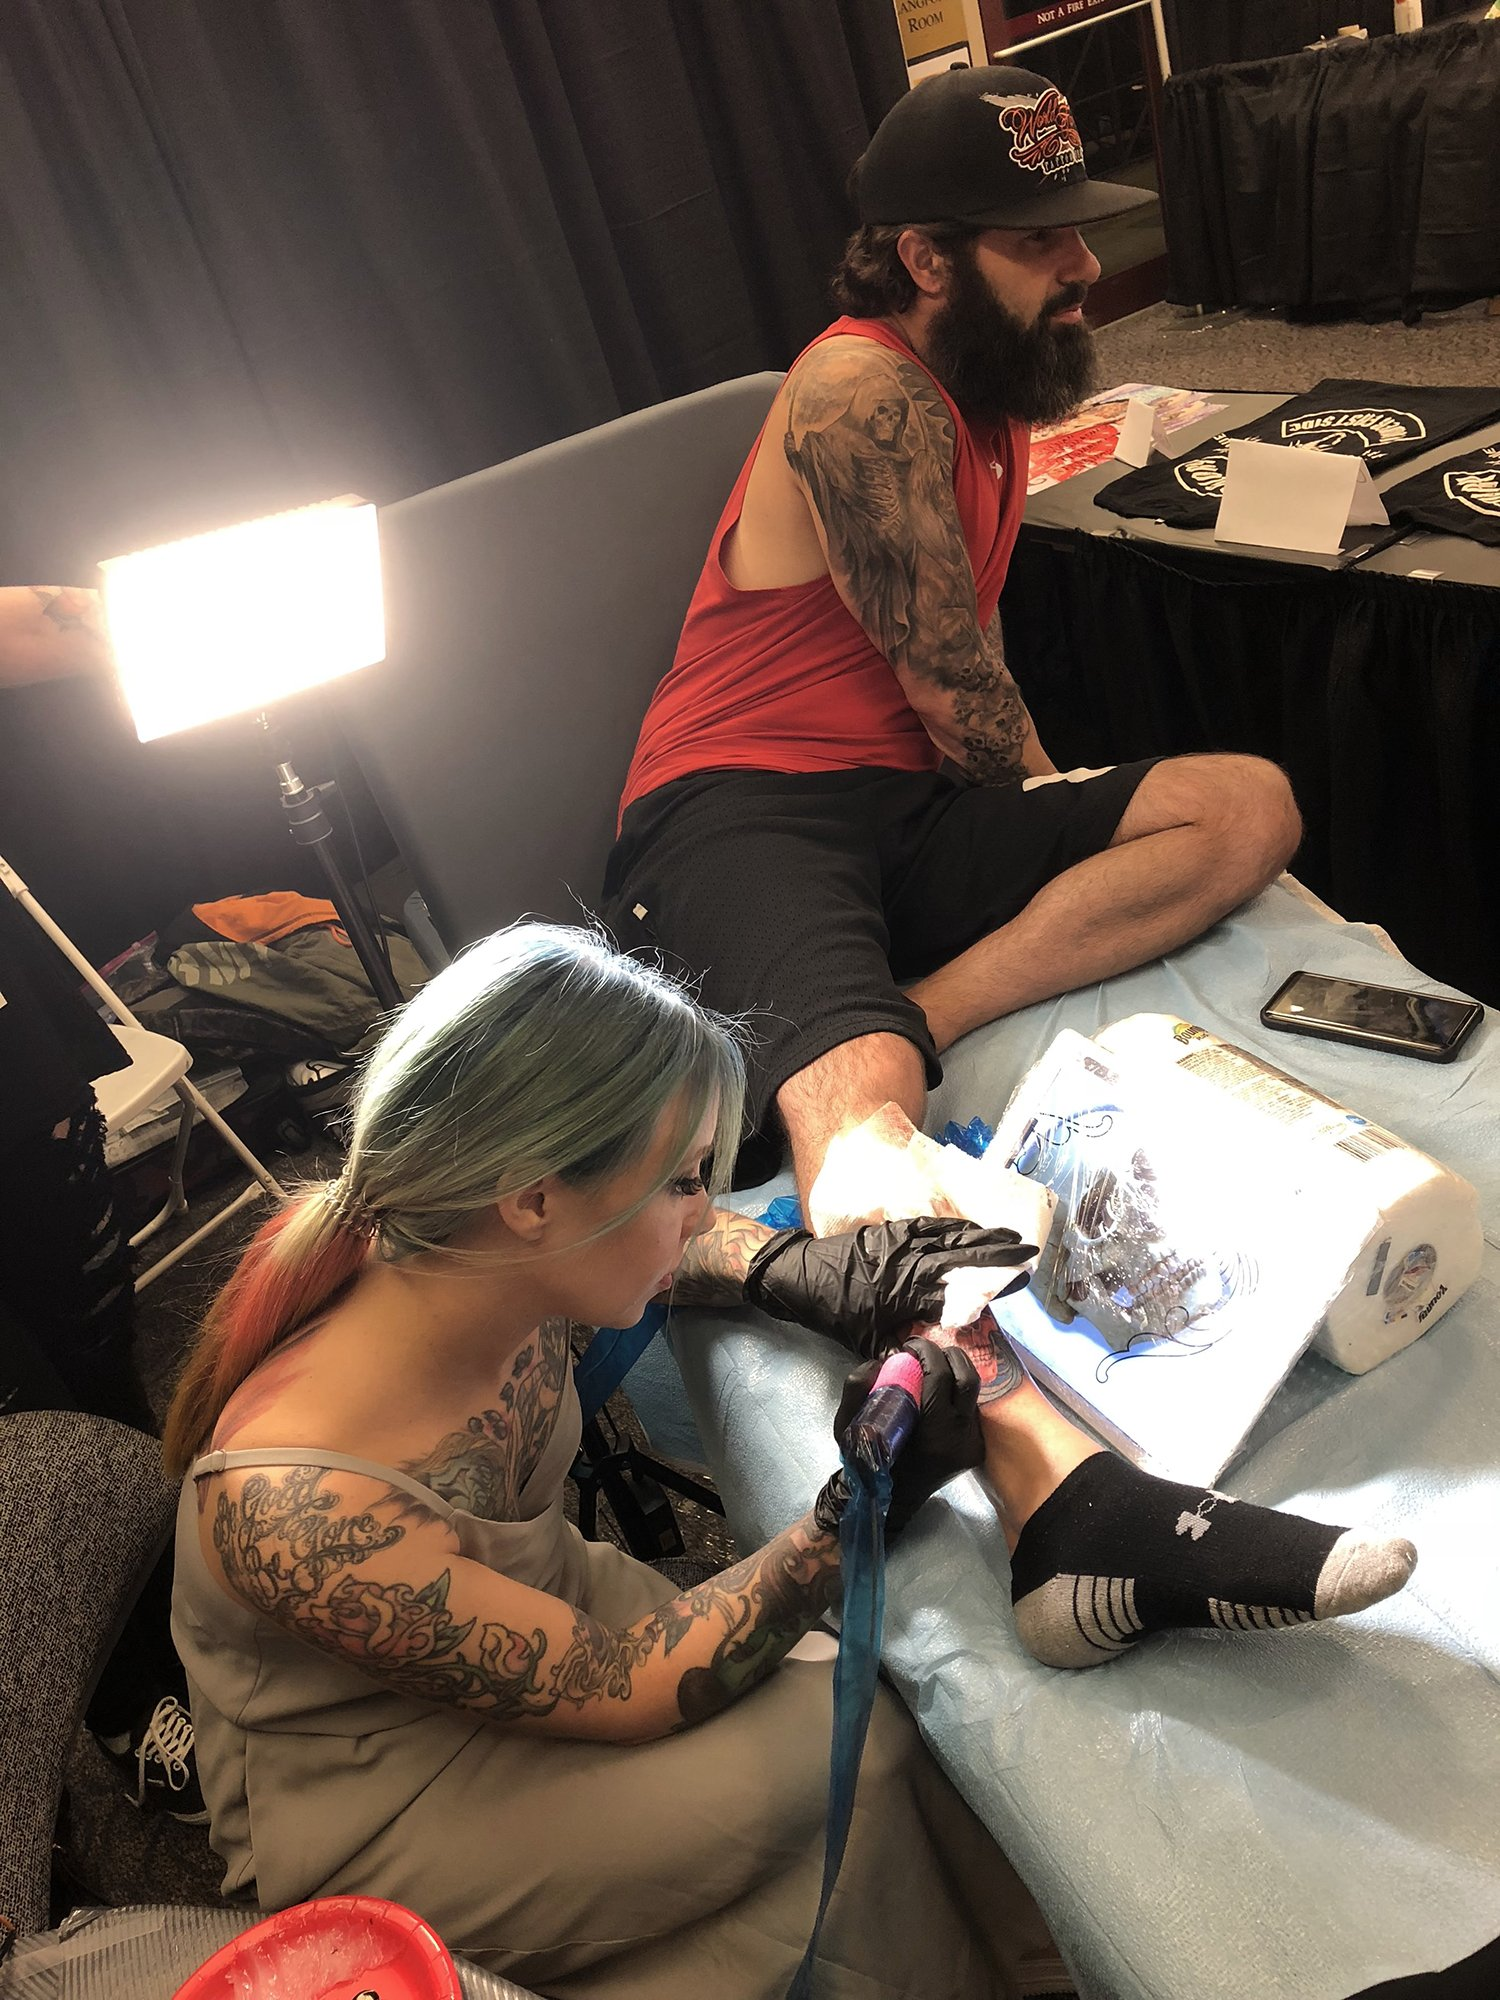 Lil Van Tattoo Artist Burns : tattoo, artist, burns, Tattoo, Artist, Design